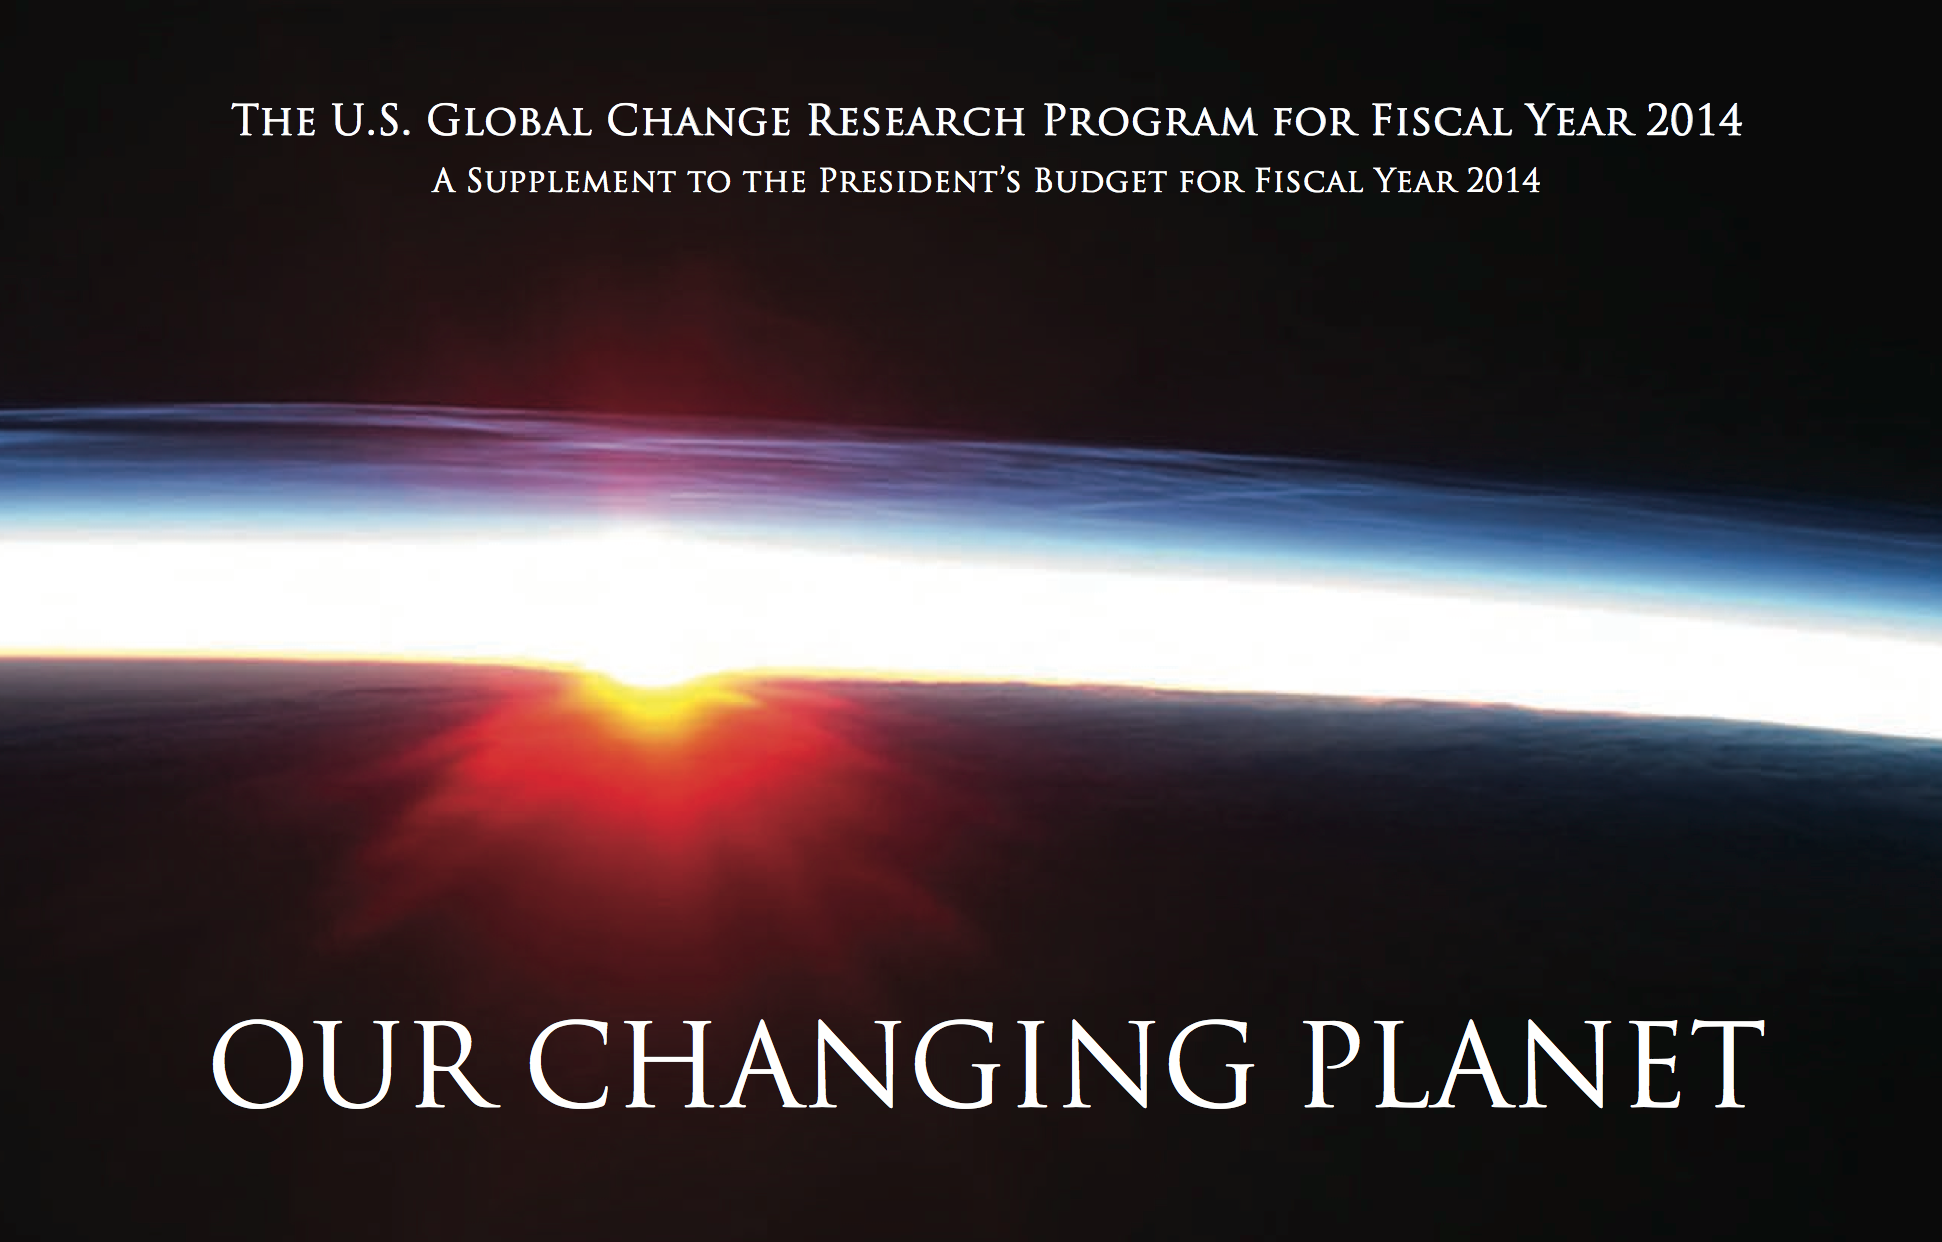 Our Changing Planet FY 2014